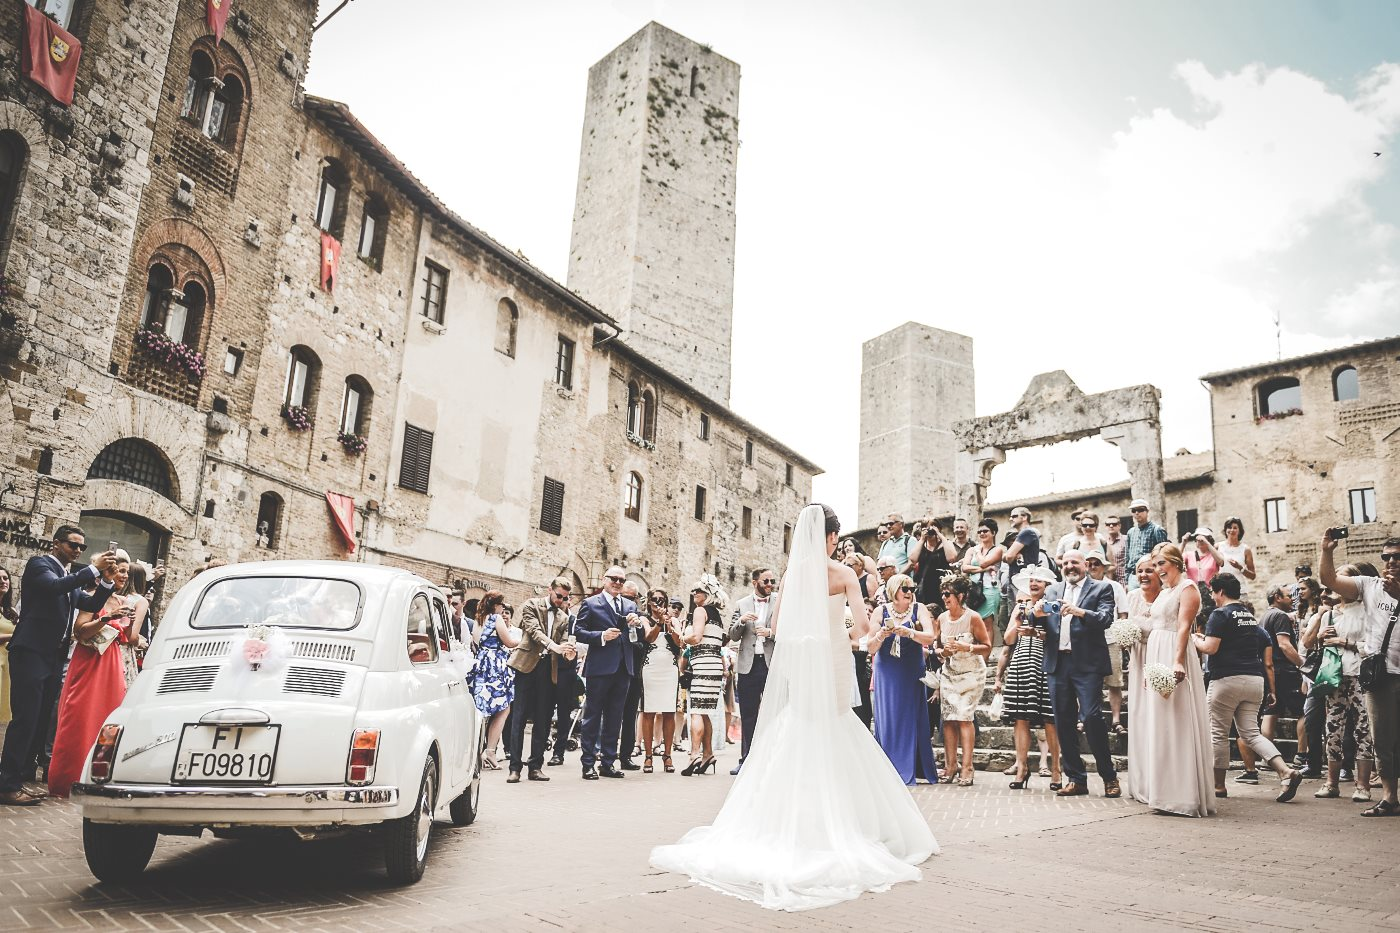 Photographer San Gimignano | Domenico Costabile